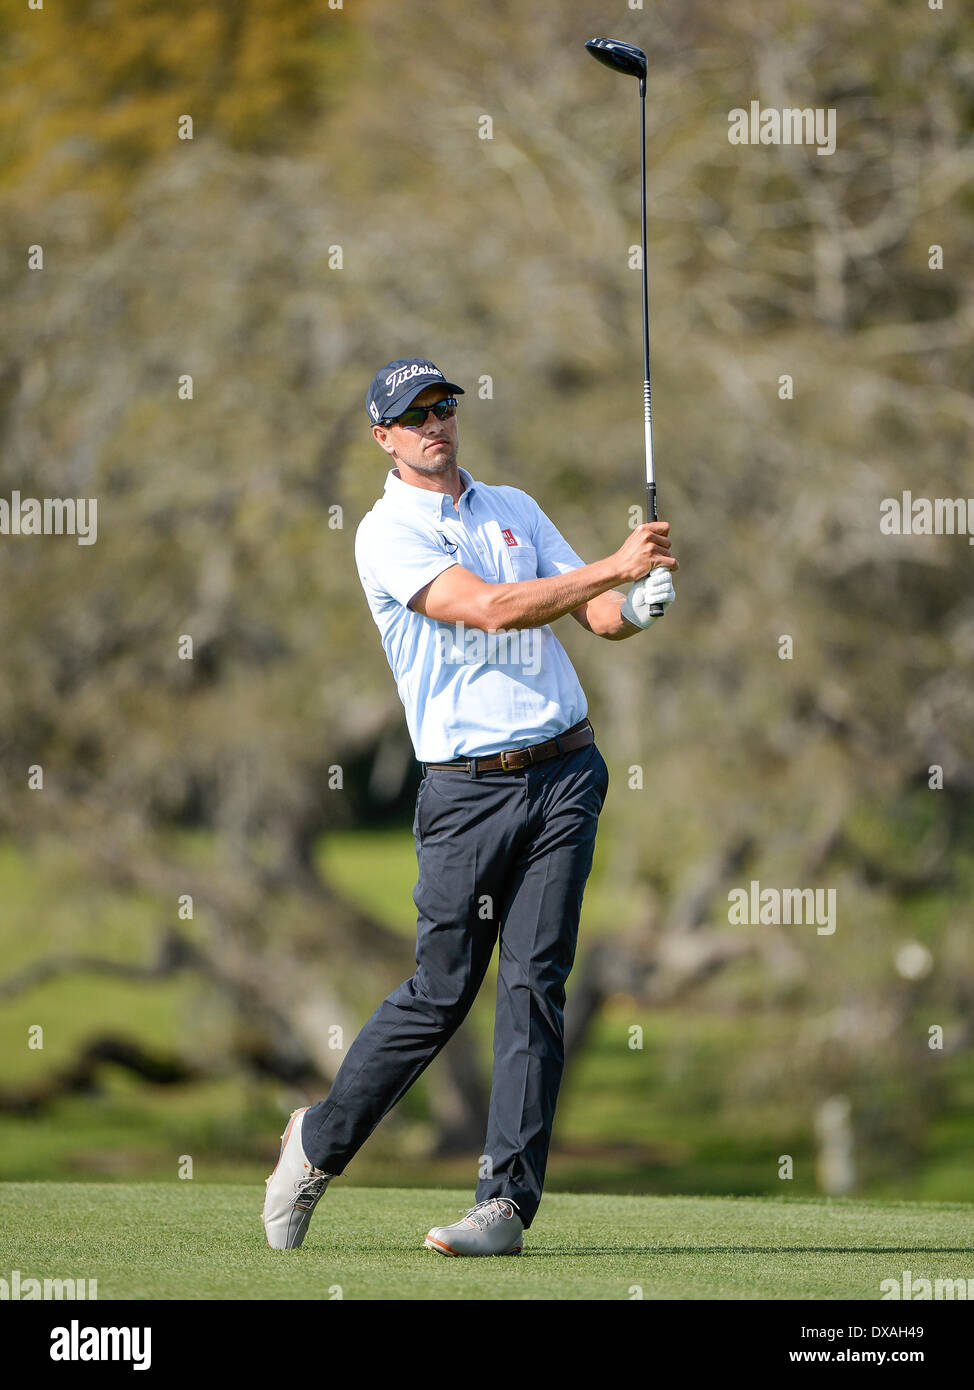 21st March 2014. Adam Scott on the 16th tee during second round golf action of the Arnold Palmer Invitational presented by Mastercard held at Arnold ...